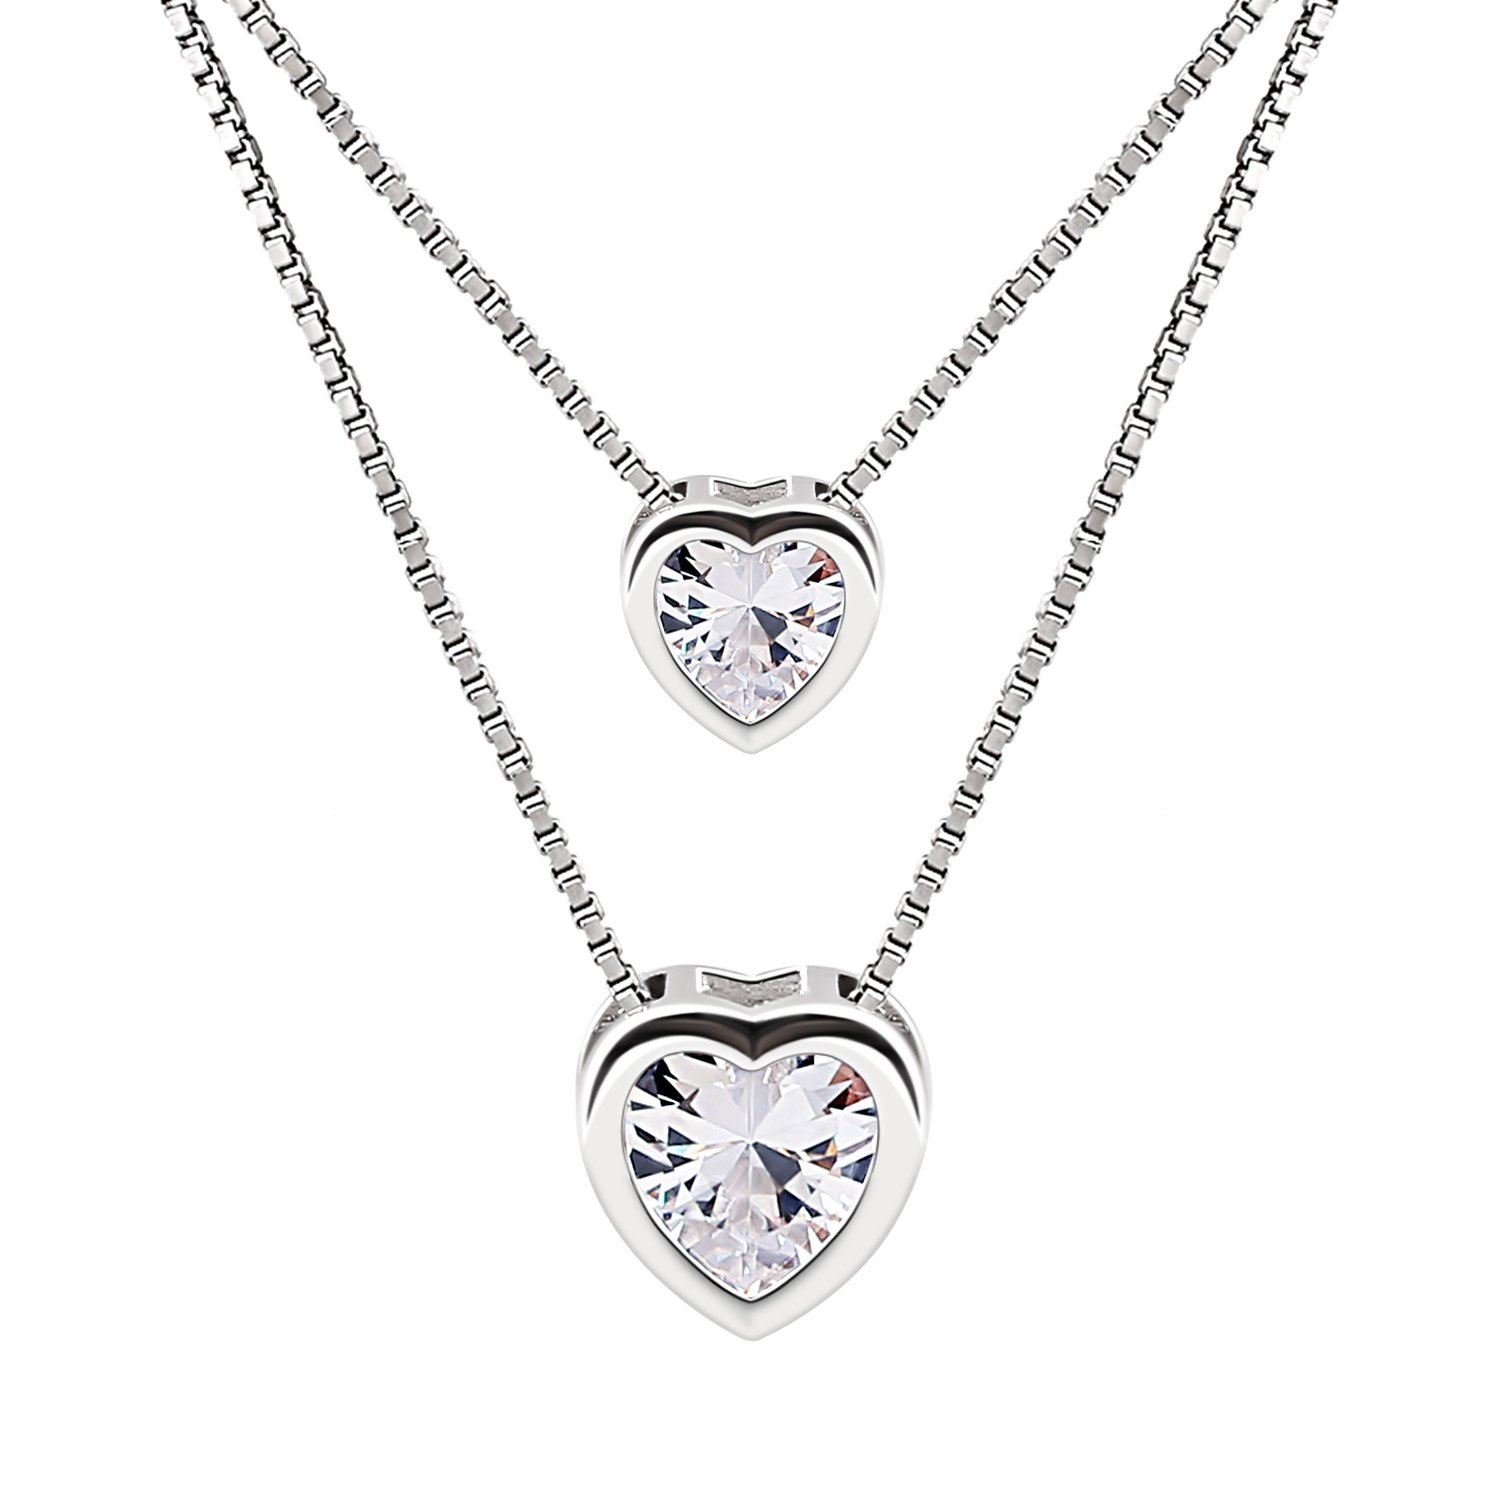 B.Catcher Pendant Necklace Jewelry for Women 925 Sterling Silver Cubic Zirconia Double Heart Layer Bead with 45cm chain